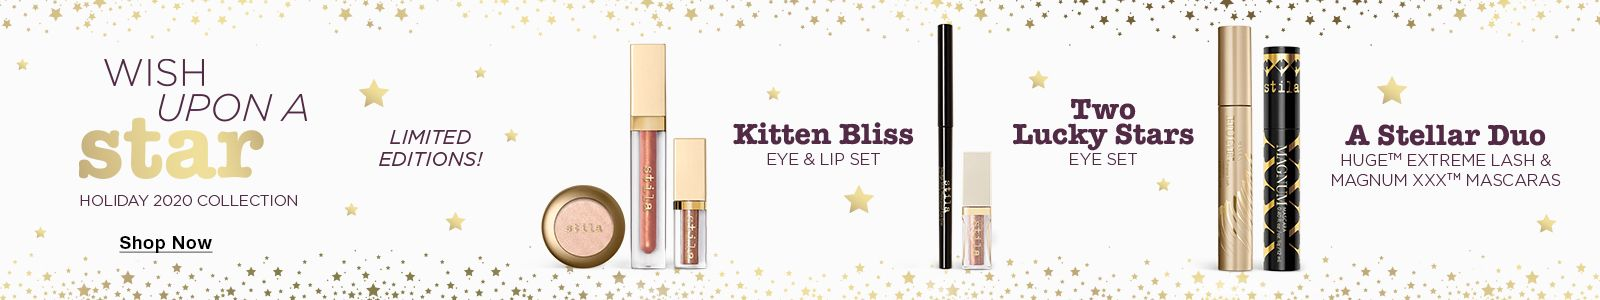 Wish Upon a Star, Shop Now, Limited Editions, Kitten Bliss, Eye and Lip Set, Two Lucky Stars, Eye Set, A Stellar Duo